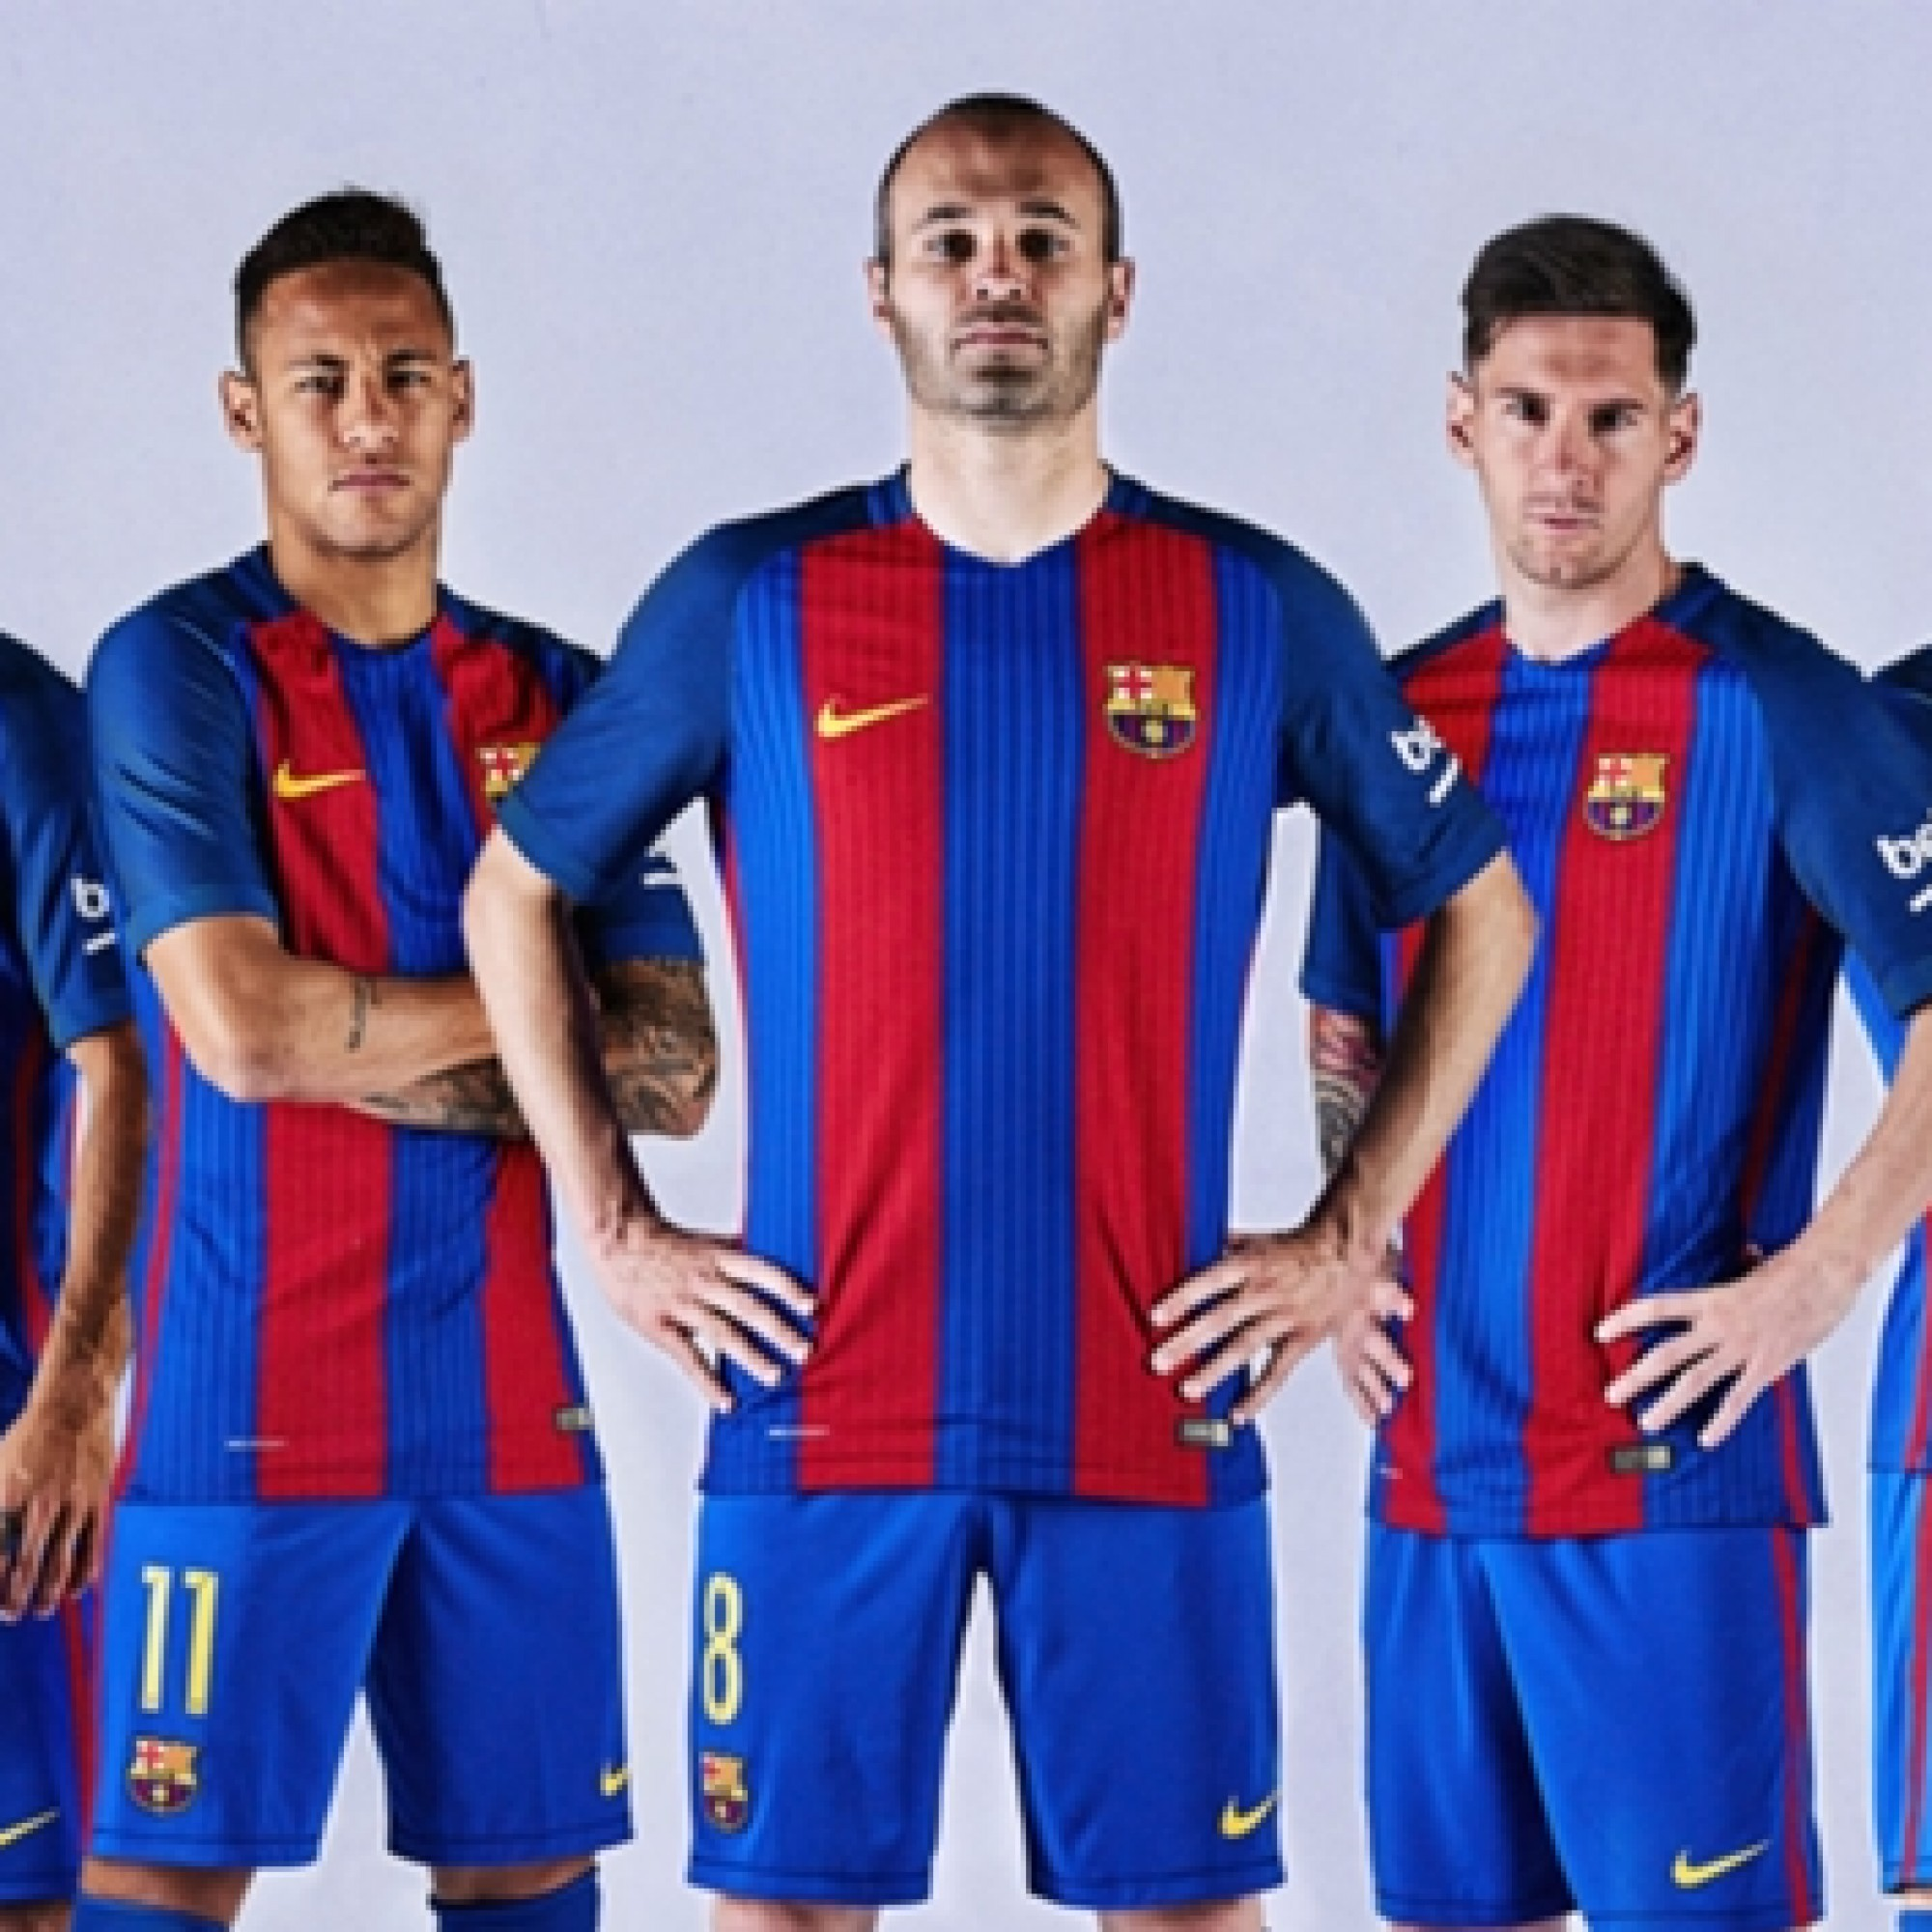 The stripes are back! Barcelona revert to tradition with retro-tasty new kit